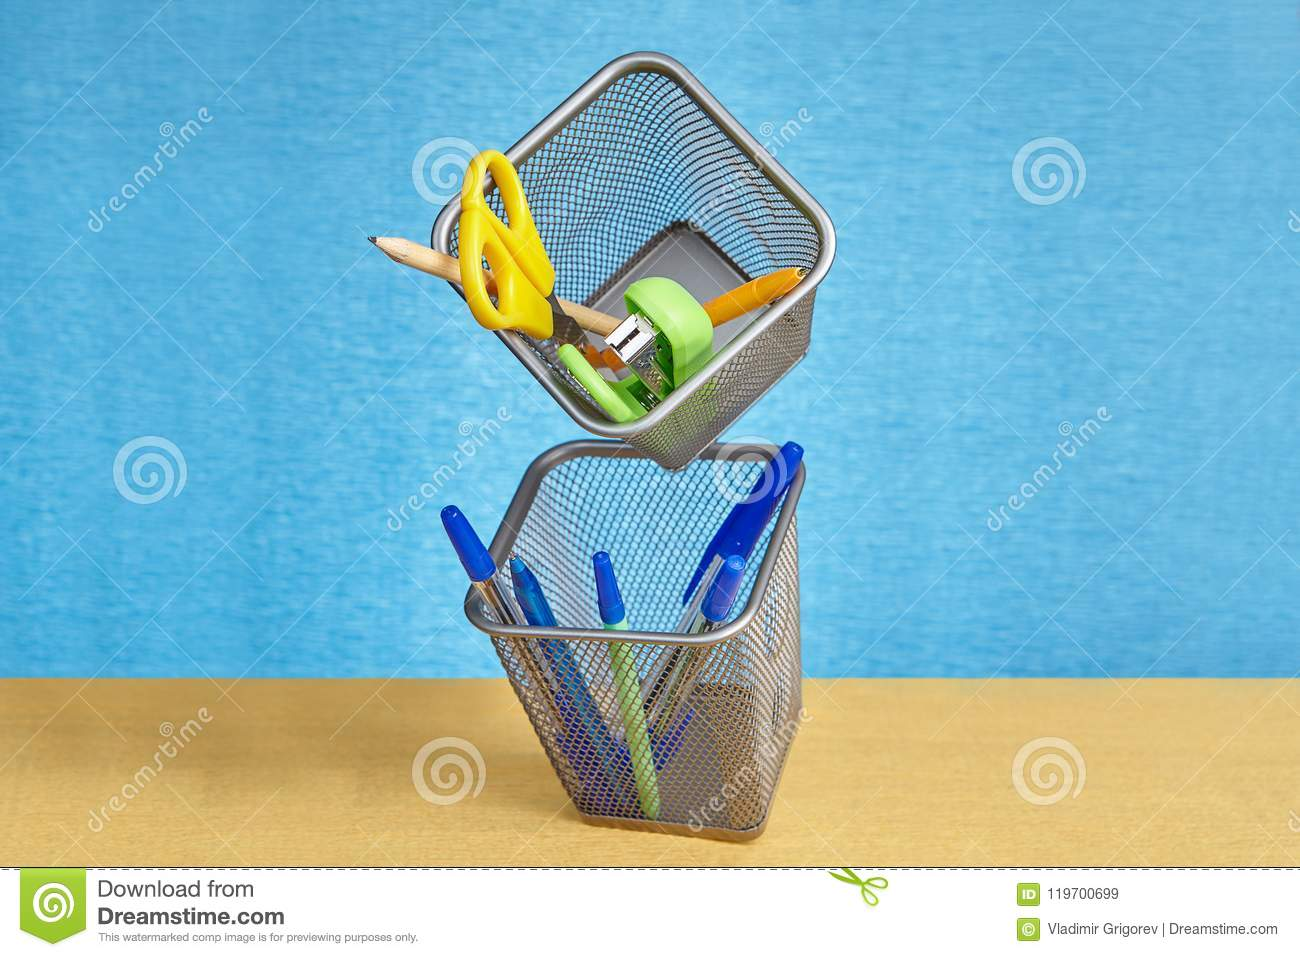 School Supplies Floating On Air In Conditions Of Zero Gravity. Stock ...